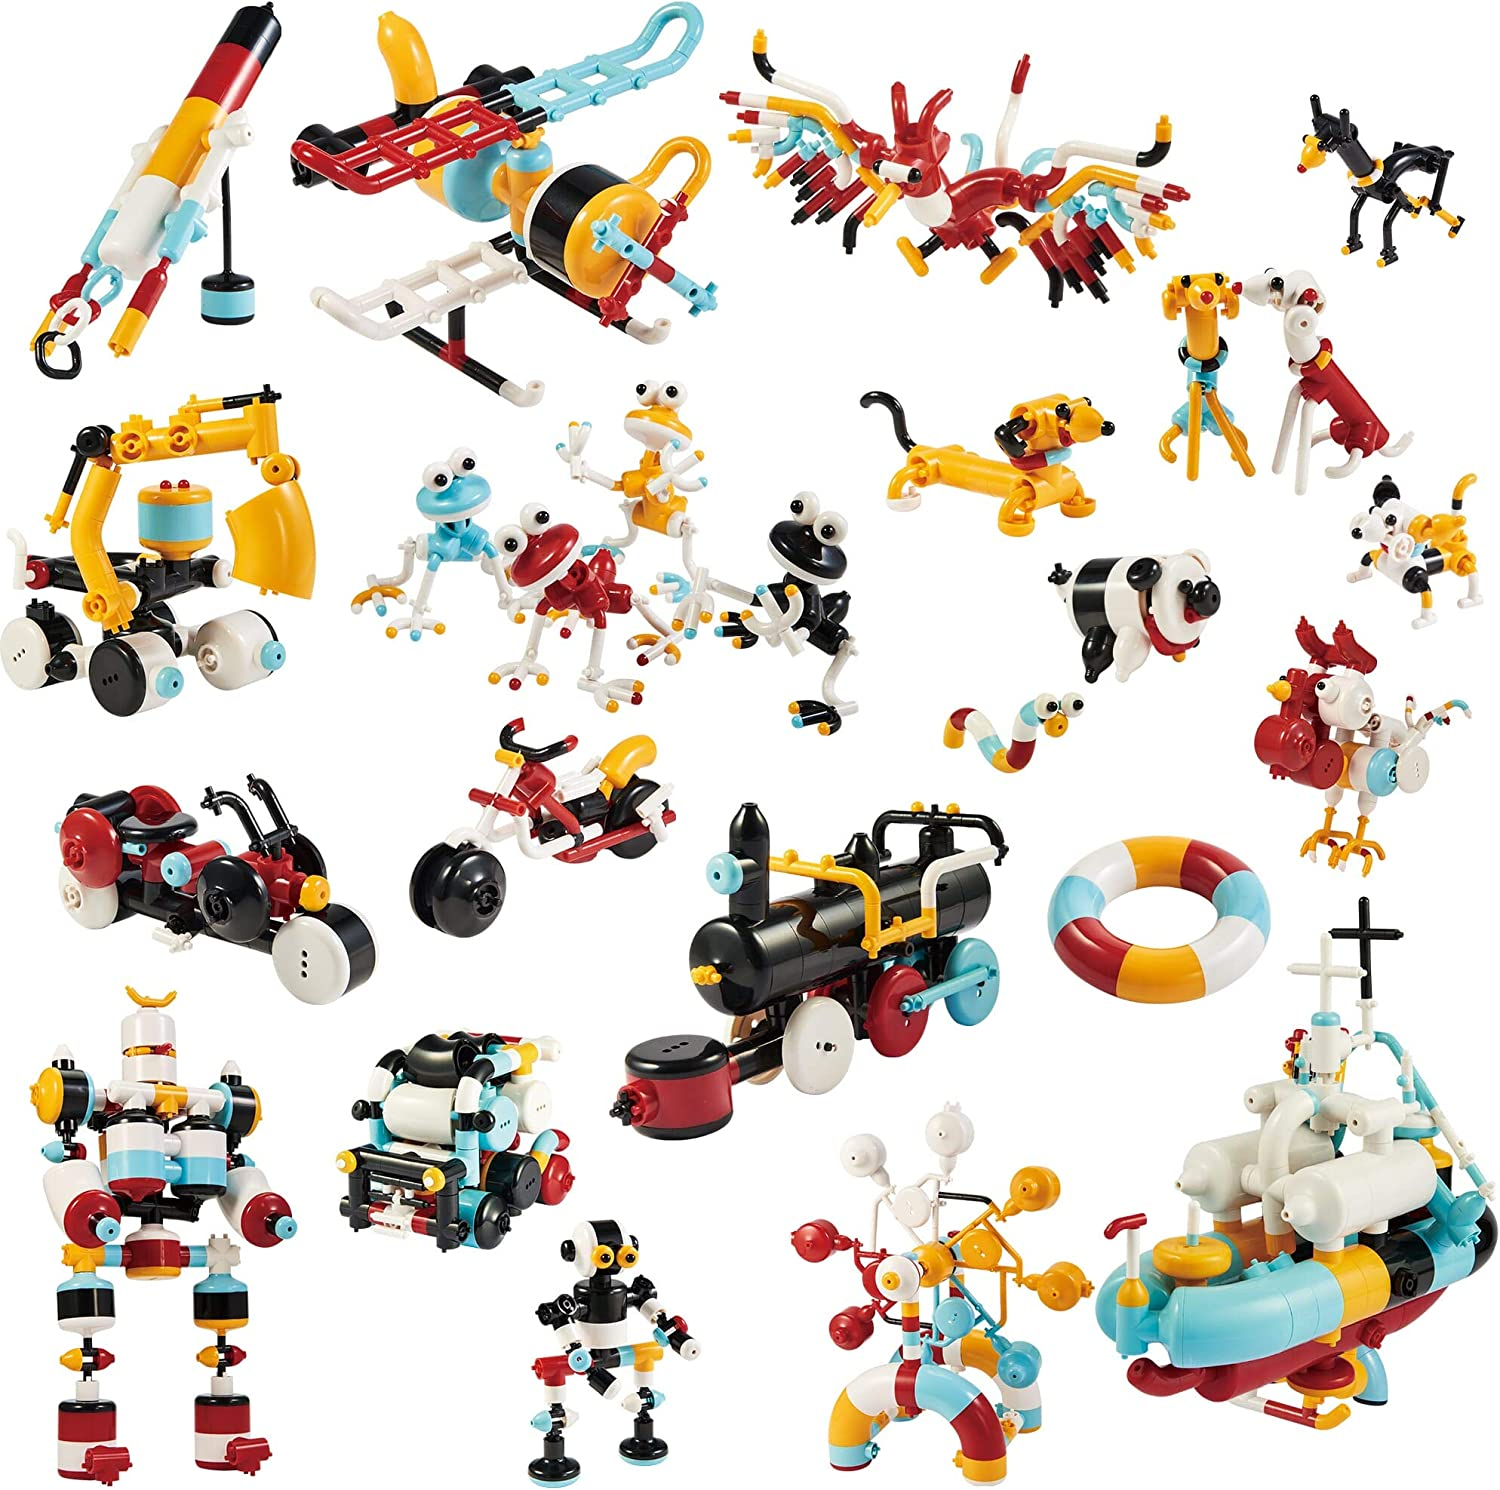 Easy Assembly - 25 Models in 1-390 Pieces Made in Japan Tublock Creative Building Brick Creator Set for Children SML 390